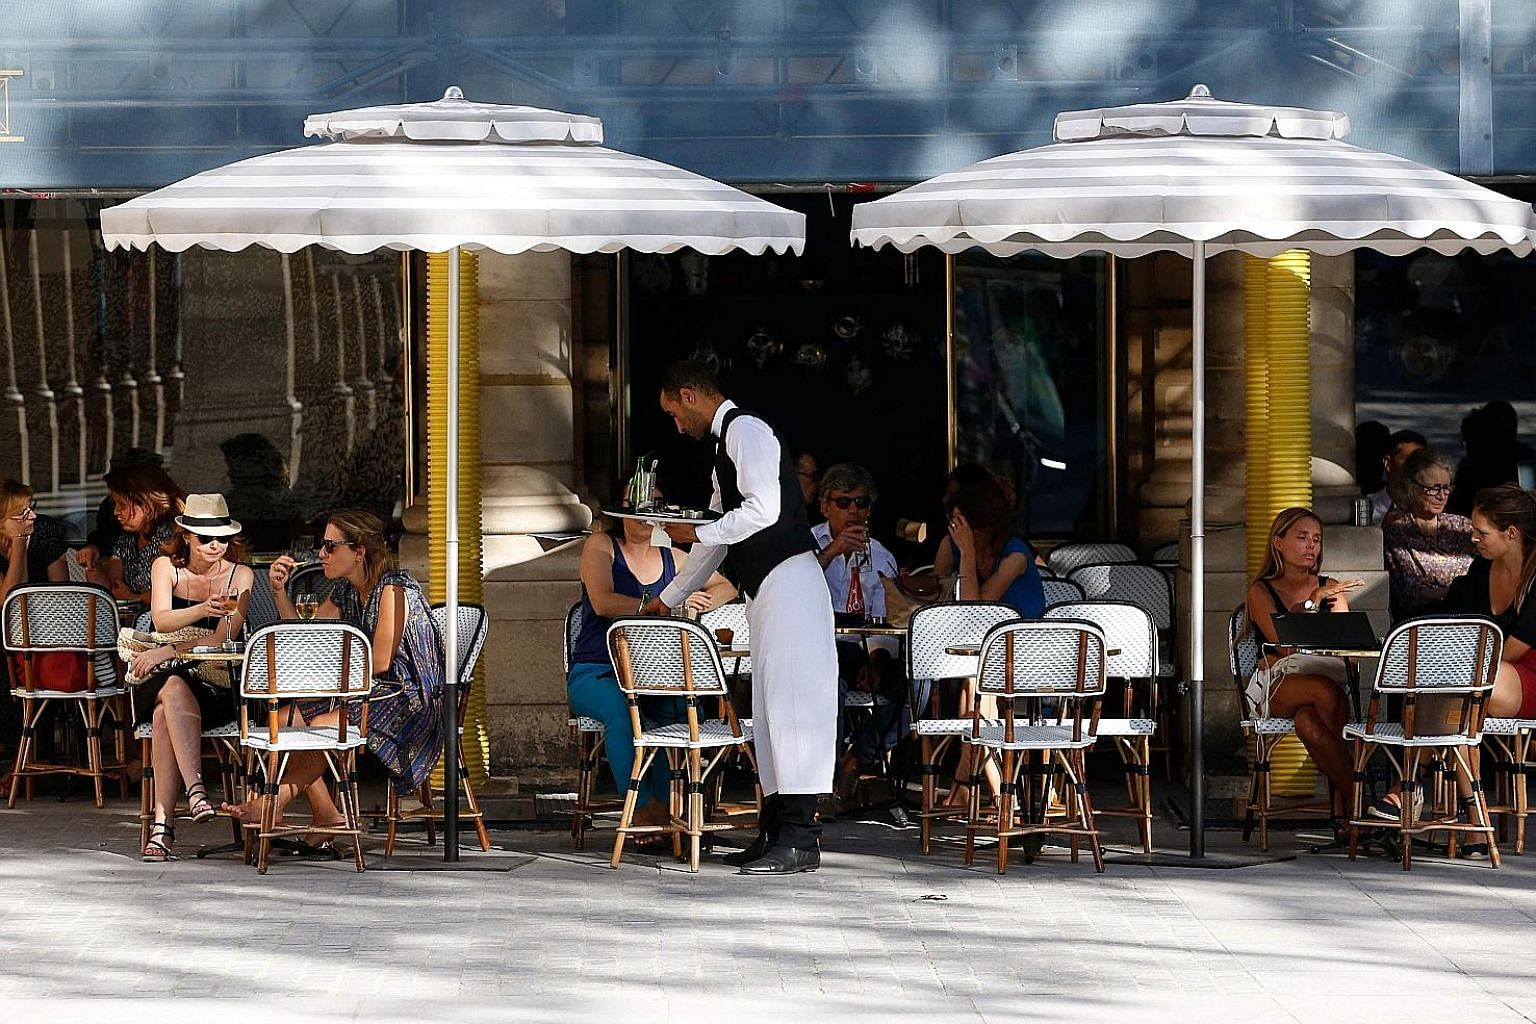 For many tourists and French citizens, Paris would not be Paris without its local bistros and sidewalk cafes. Now, a coalition of bistro owners, unions and trade organisations is lobbying to get Unesco to grant these cafes world cultural heritage sta